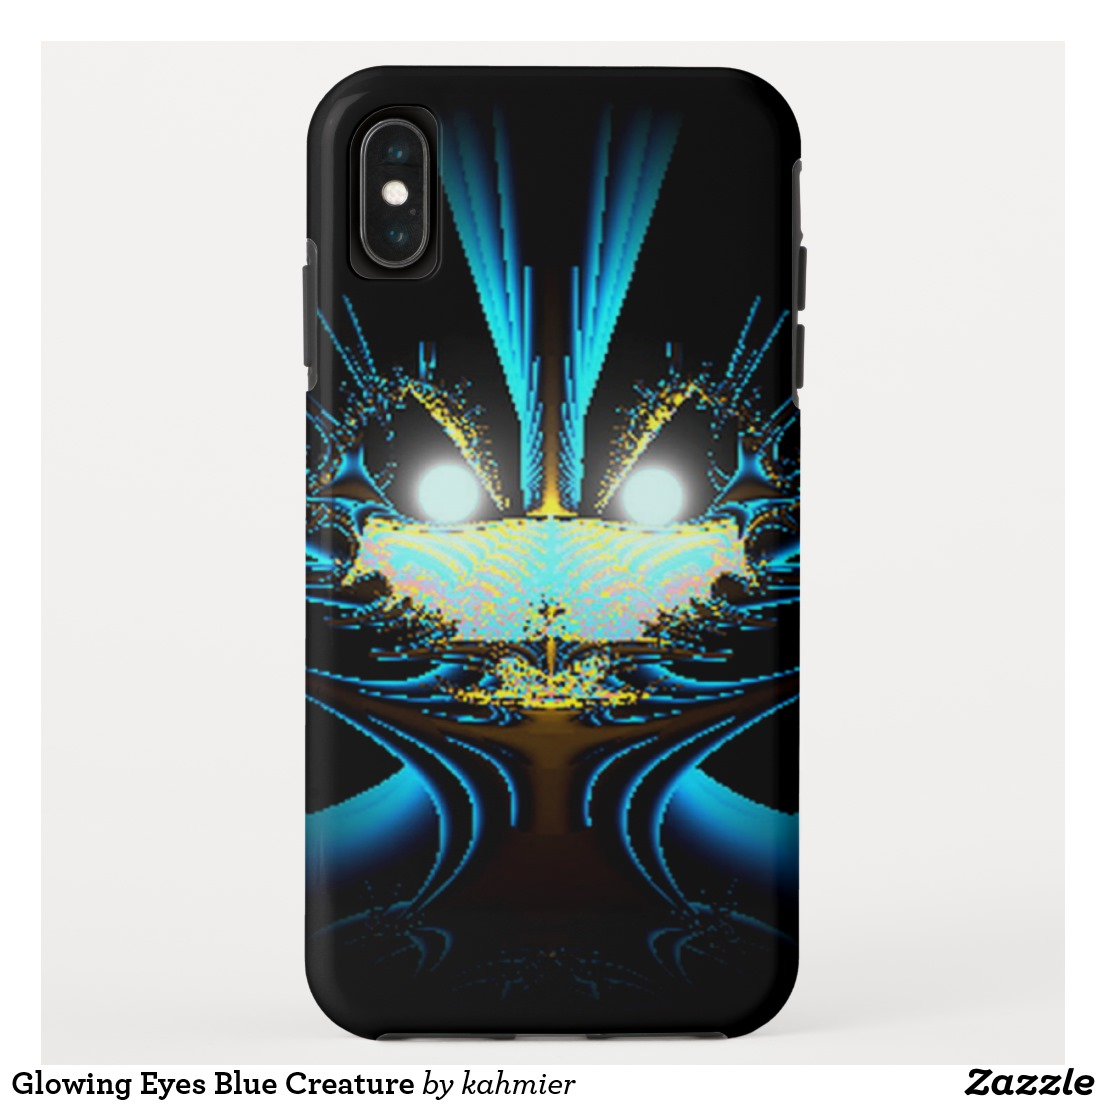 Glowing Eyes Blue Creature iPhone XS Max Case